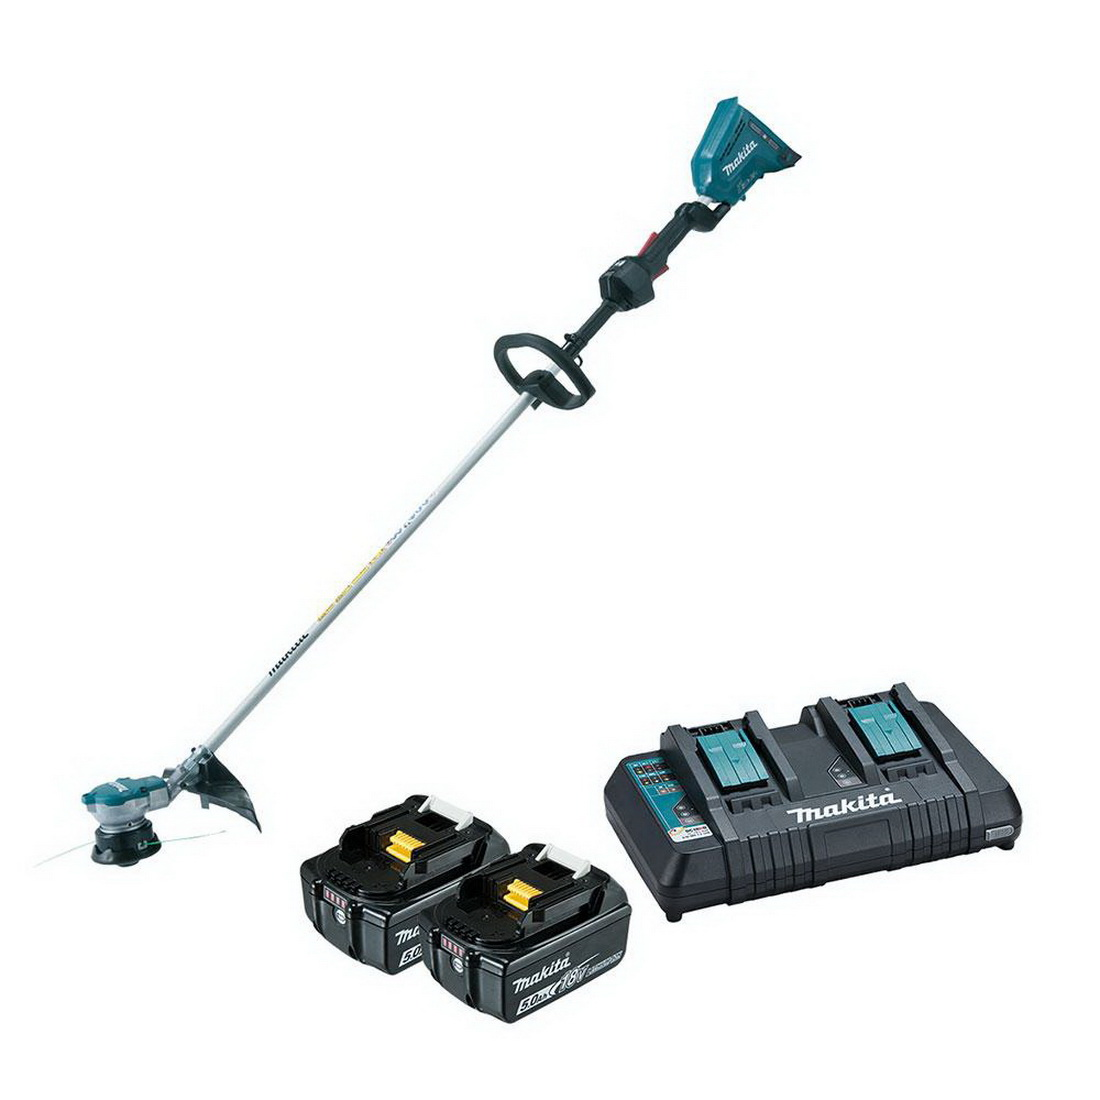 Lxt Li-Ion Brushless Grass/Line Trimmer Kit 36V 5Ah